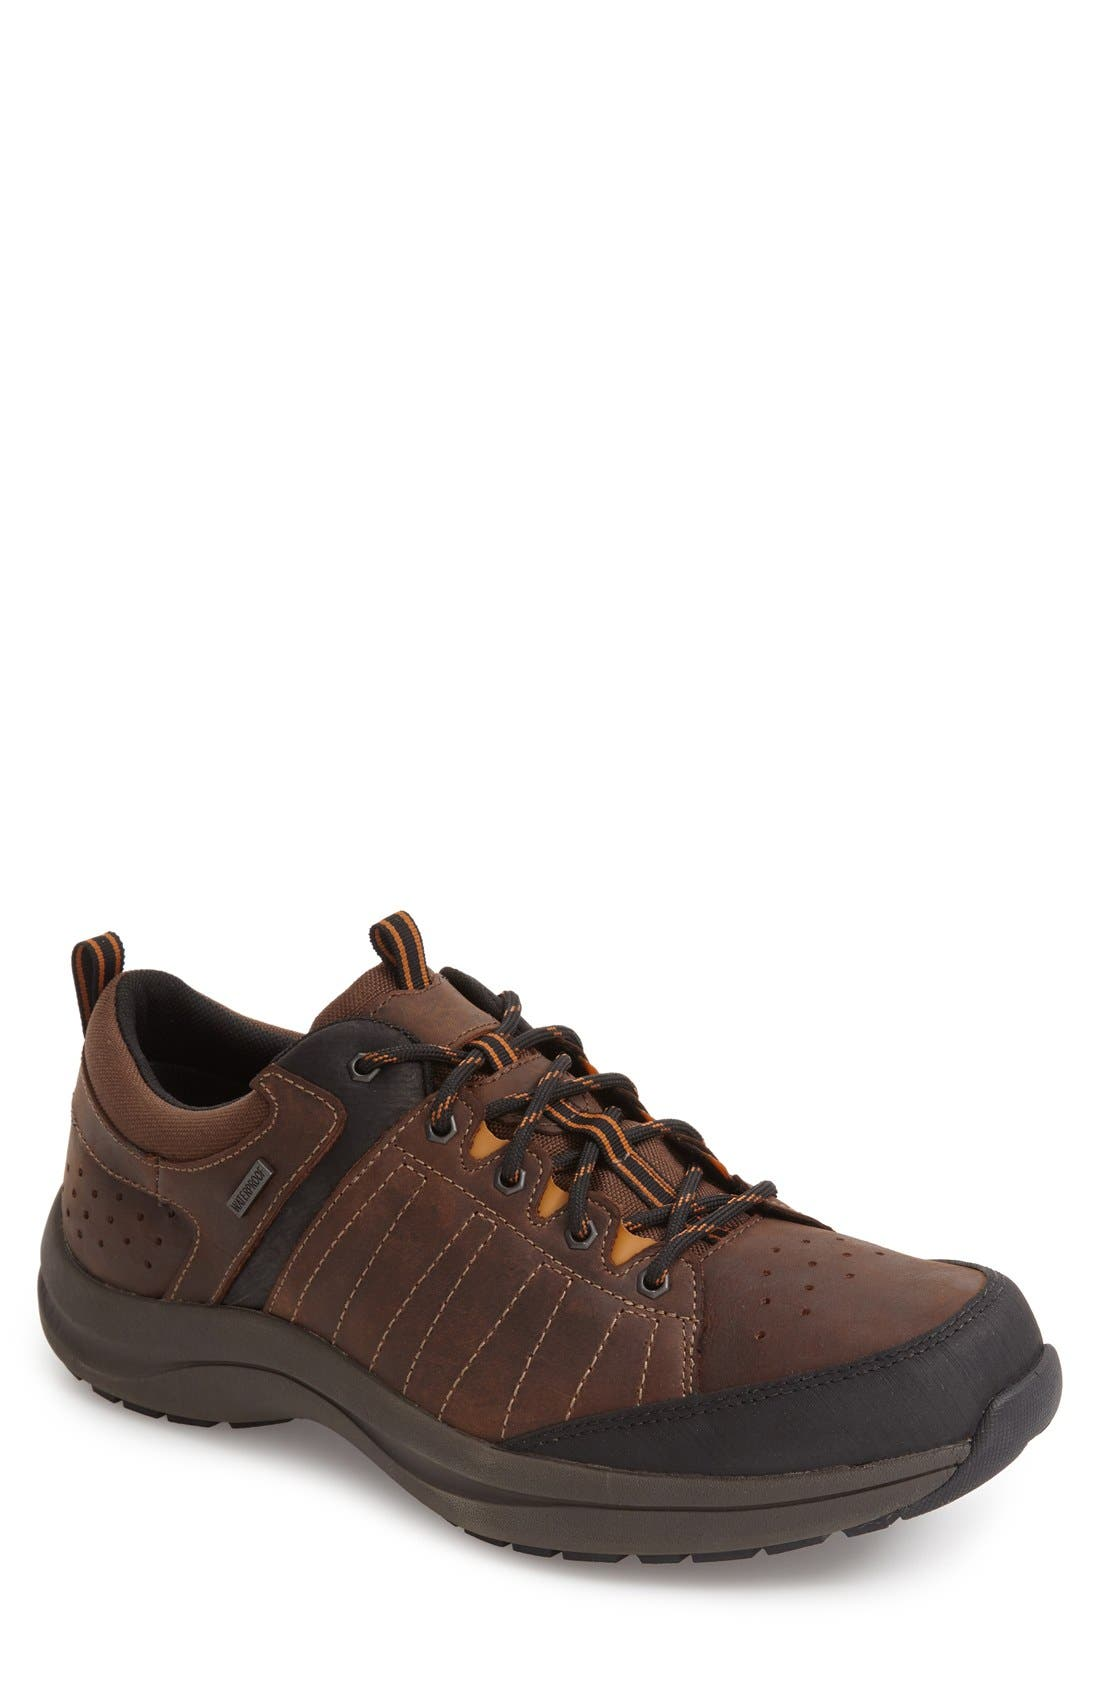 DUNHAM Seth-Dun Waterproof Sneaker, Main, color, BROWN LEATHER